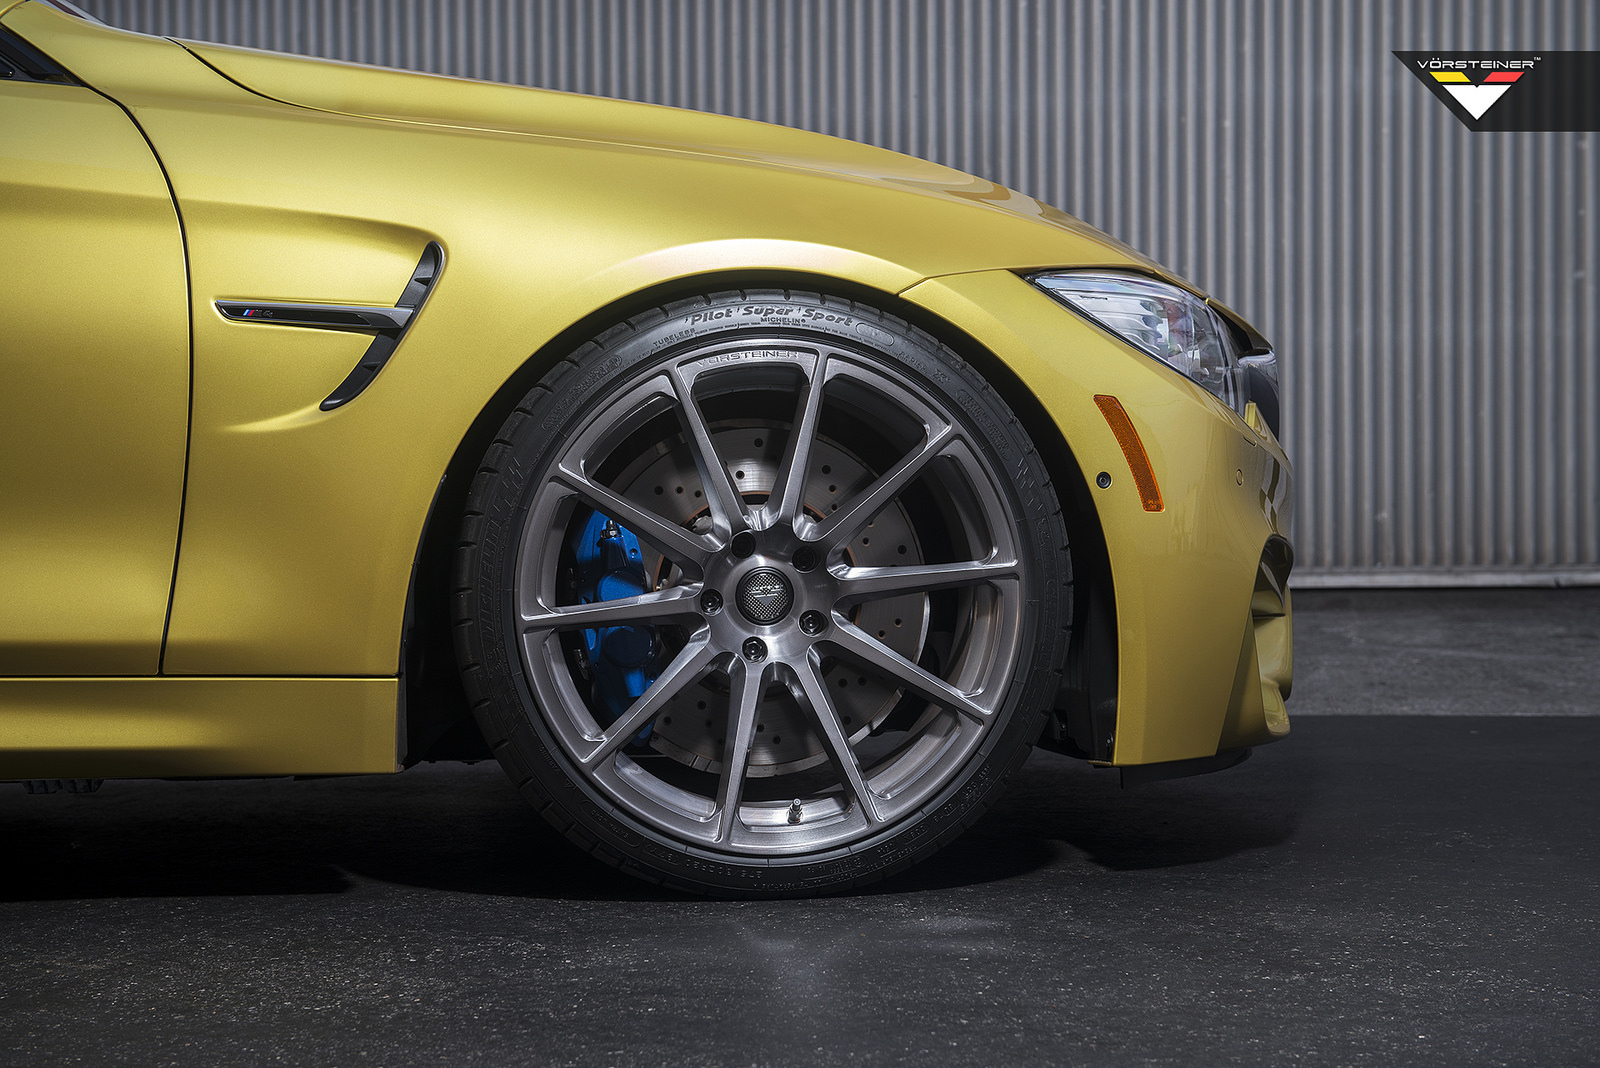 Austin Yellow Bmw F82 M4 On Vorsteiner Vsr 163 Wheels